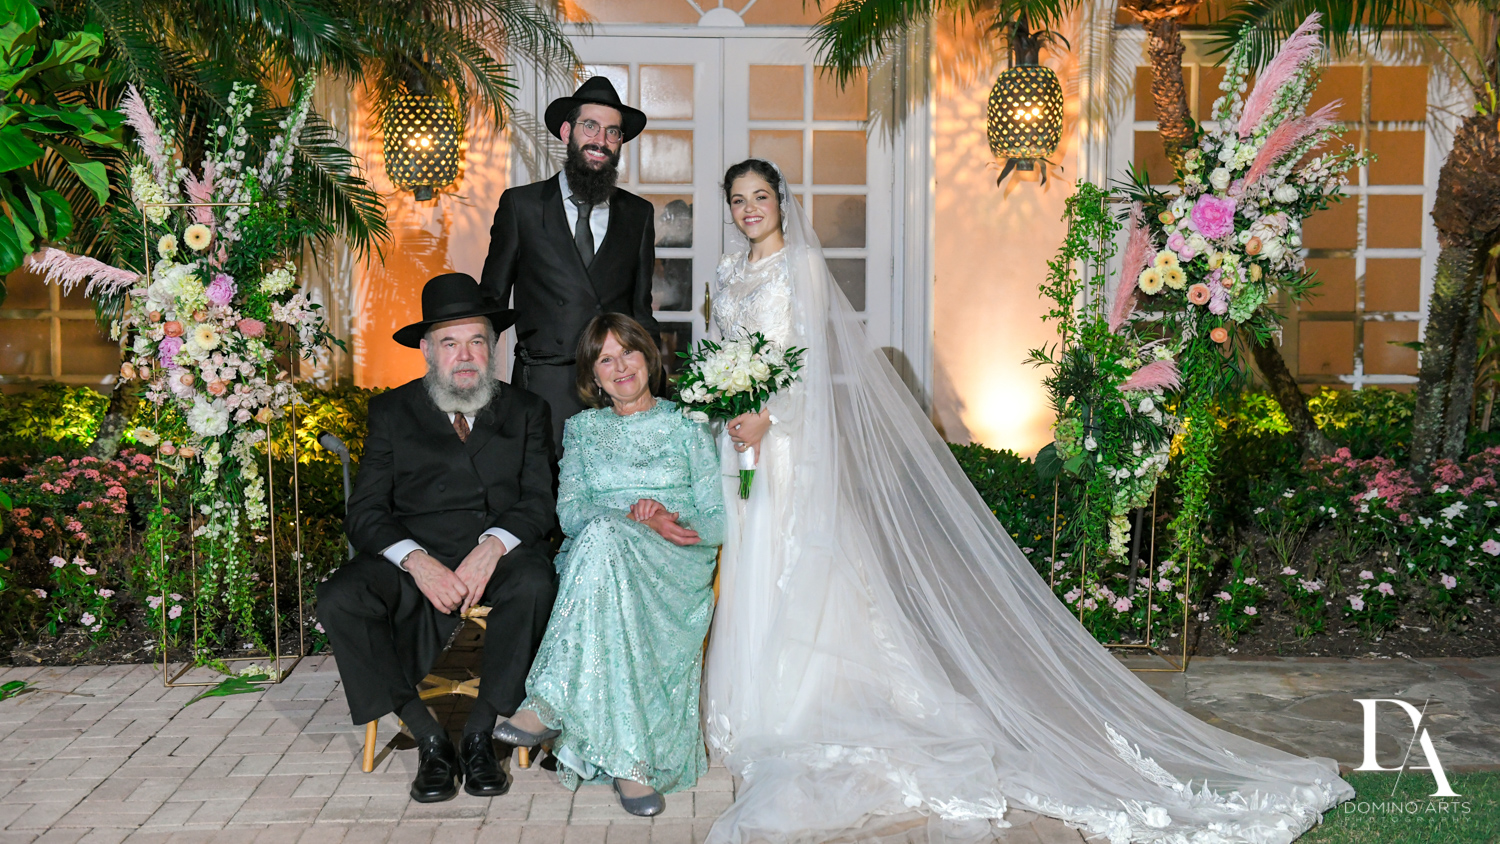 classic family portraits at Jewish Orthodox Wedding in Palm Beach by Domino Arts Photography